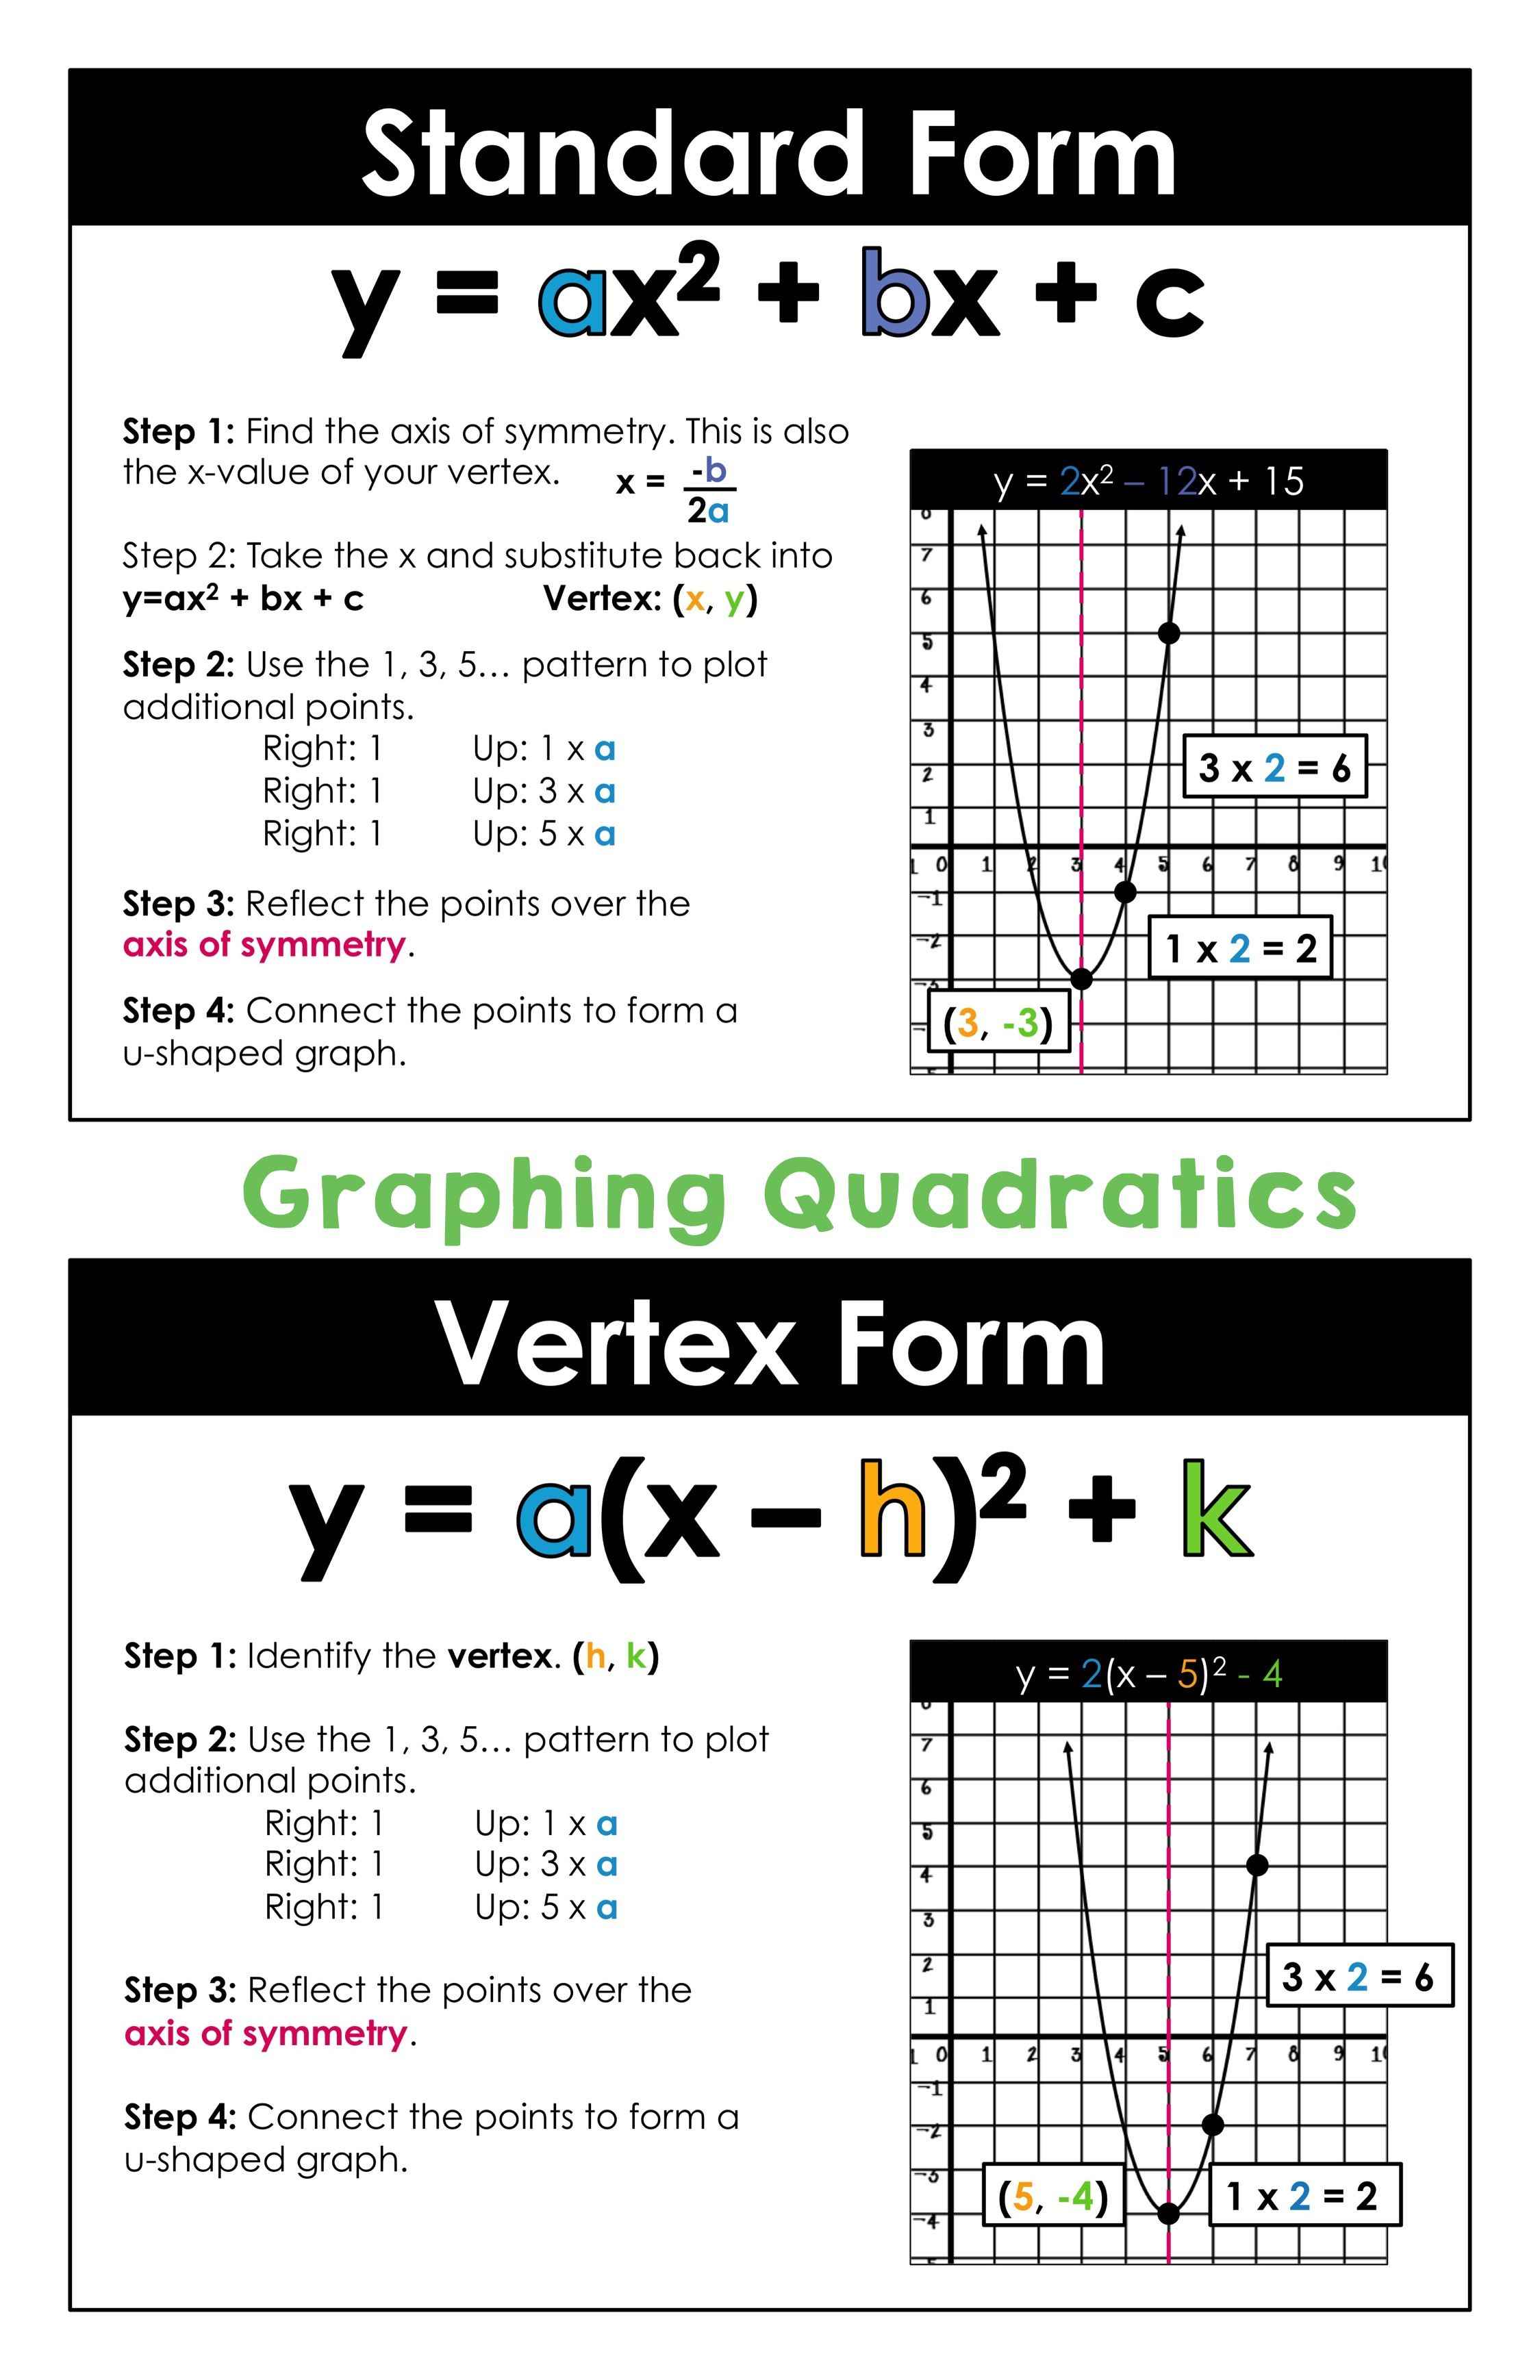 Graphing Quadratics In Standard Form And Vertex Includes Color Copied That Can Be Used As A Clroom Poster Student Copy